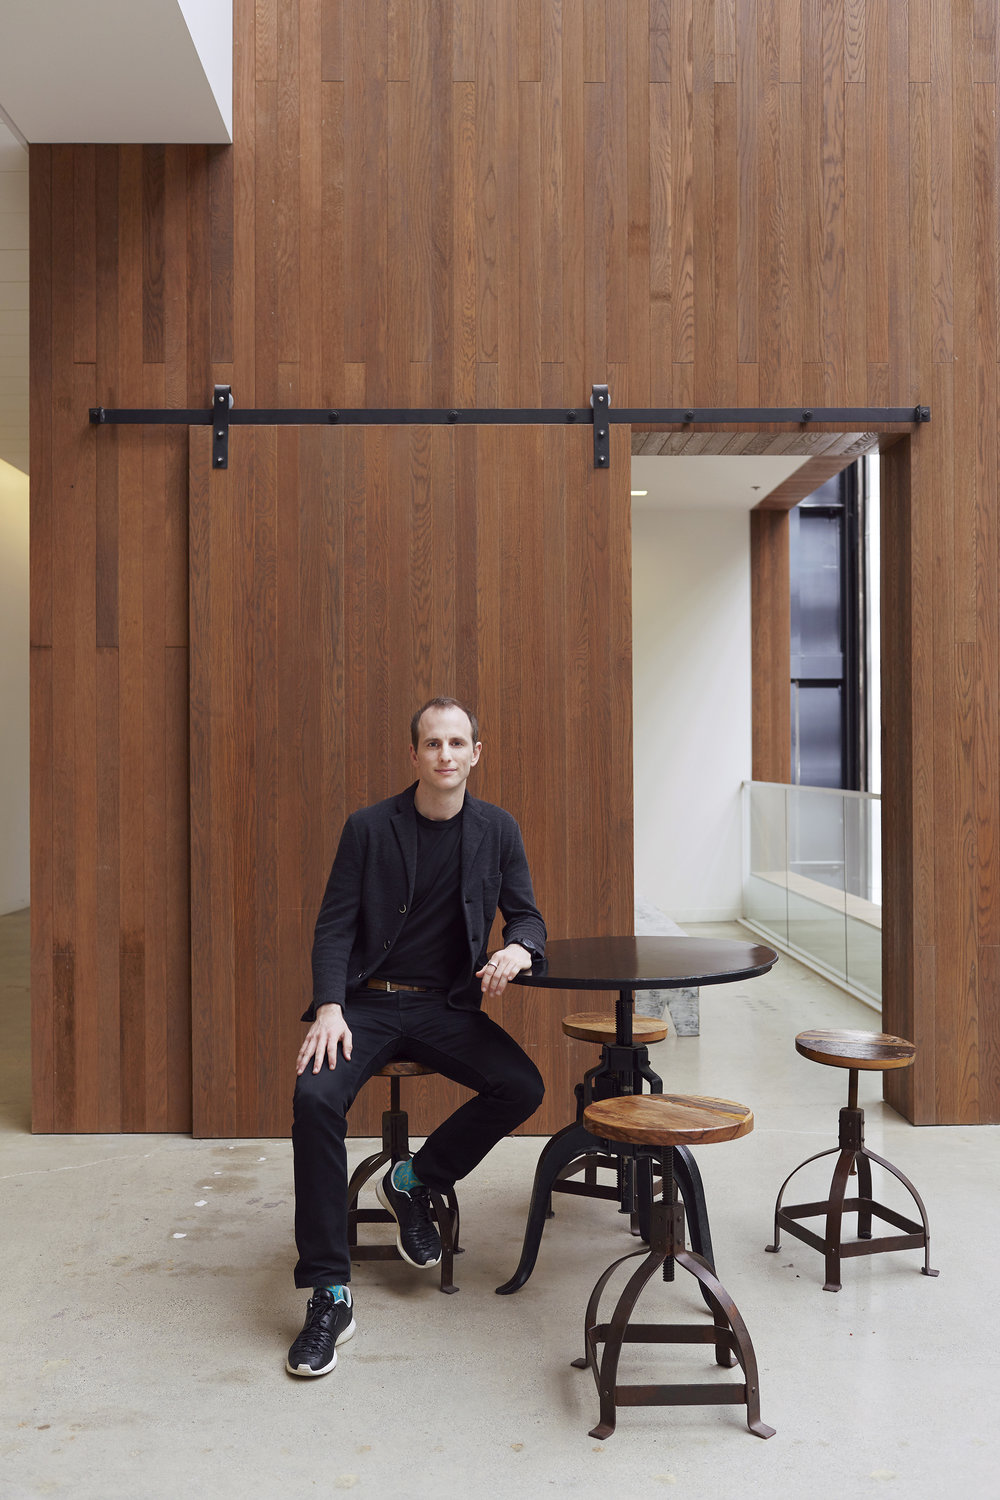 13 Offscreen Magazine - 2016.03.14 - Joe Gebbia - 187 copy.jpg